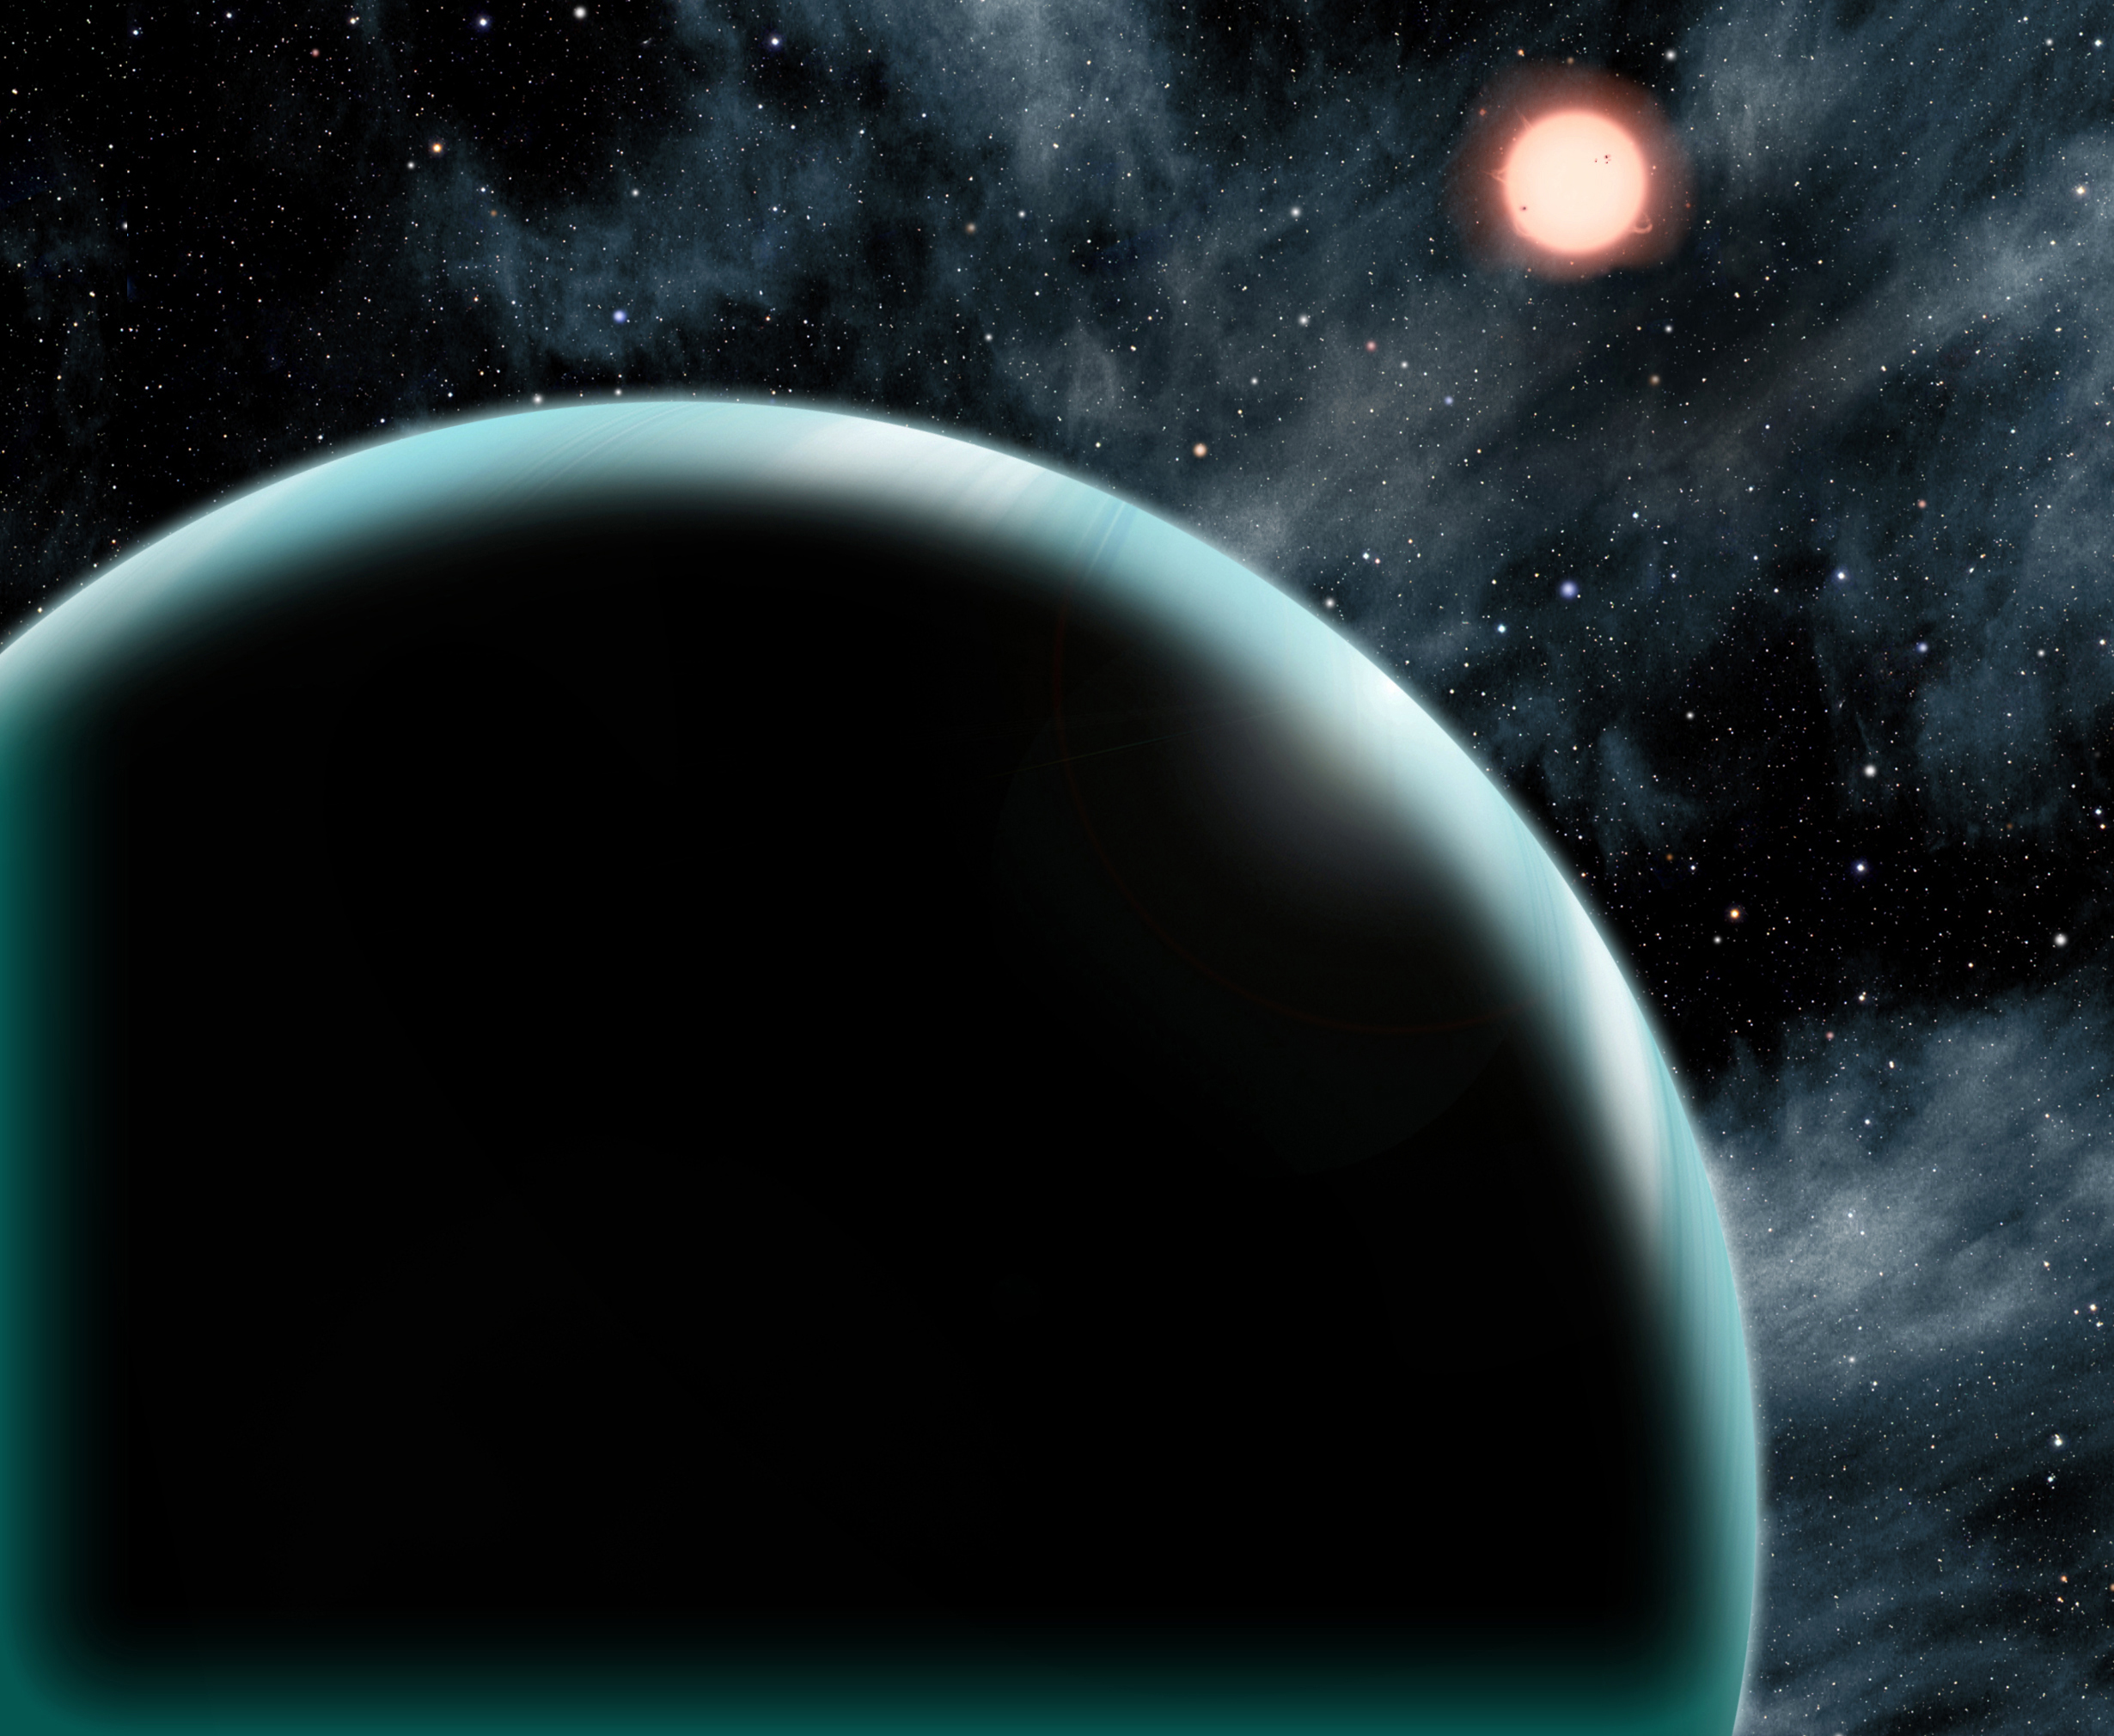 This artist's conception shows Kepler-421b, a Uranus-sized transiting exoplanet with the longest known year, circling its star once every 704 days. Kepler-421b orbits an orange, K-type star that is cooler and dimmer than our sun and is located about 1,000 light-years from Earth in the constellation Lyra.   Image Credit:Harvard-Smithsonian, Center for Astrophysics/D. A. Aguilar